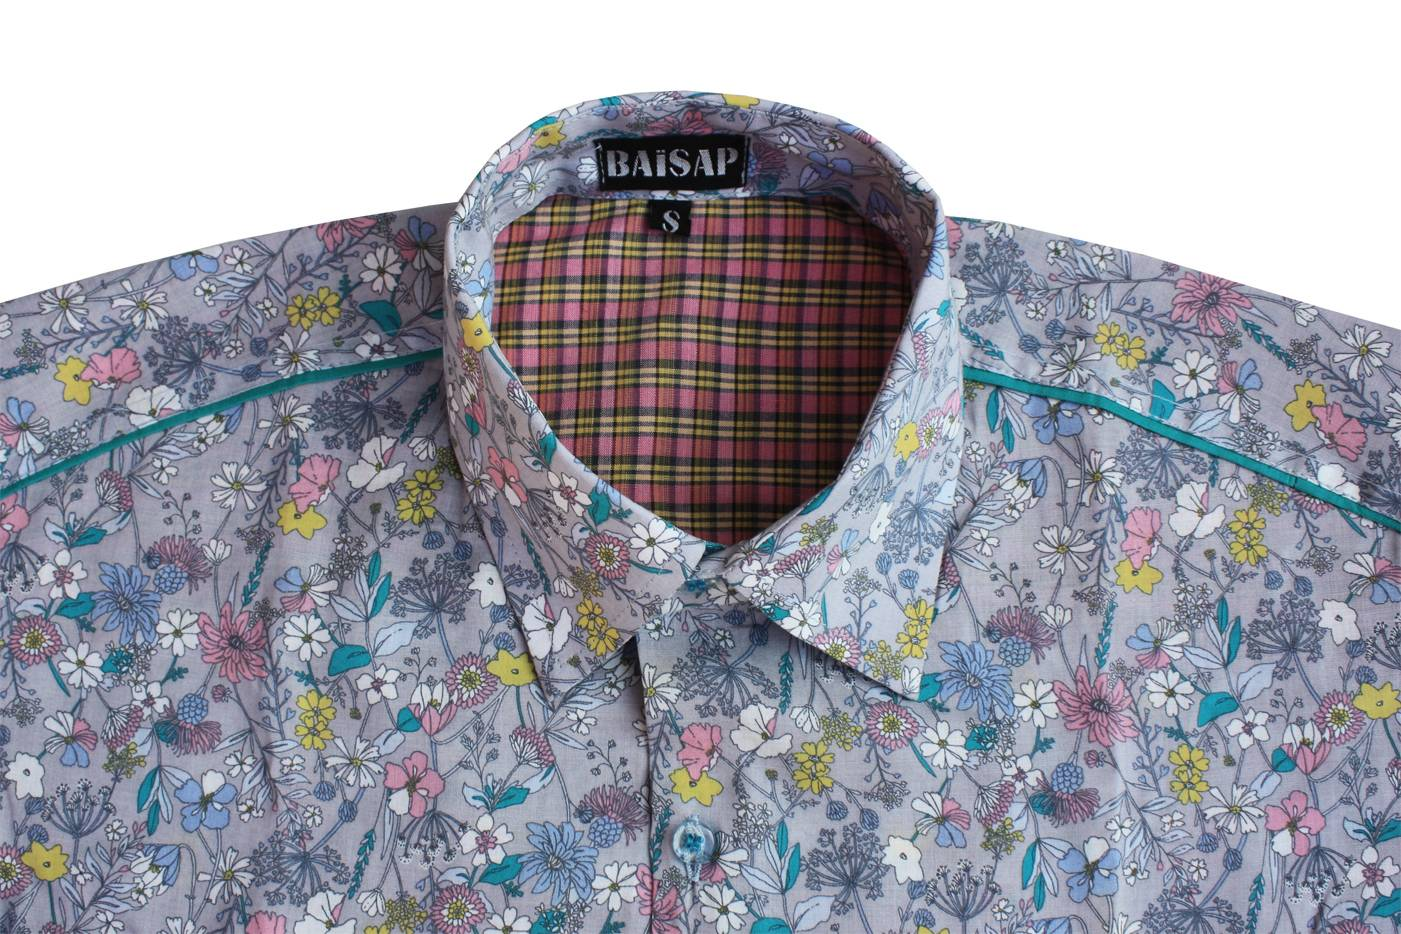 Camisa Flores Mangas Baisap Corta Eqrwpn8gn Campo nwv8mN0